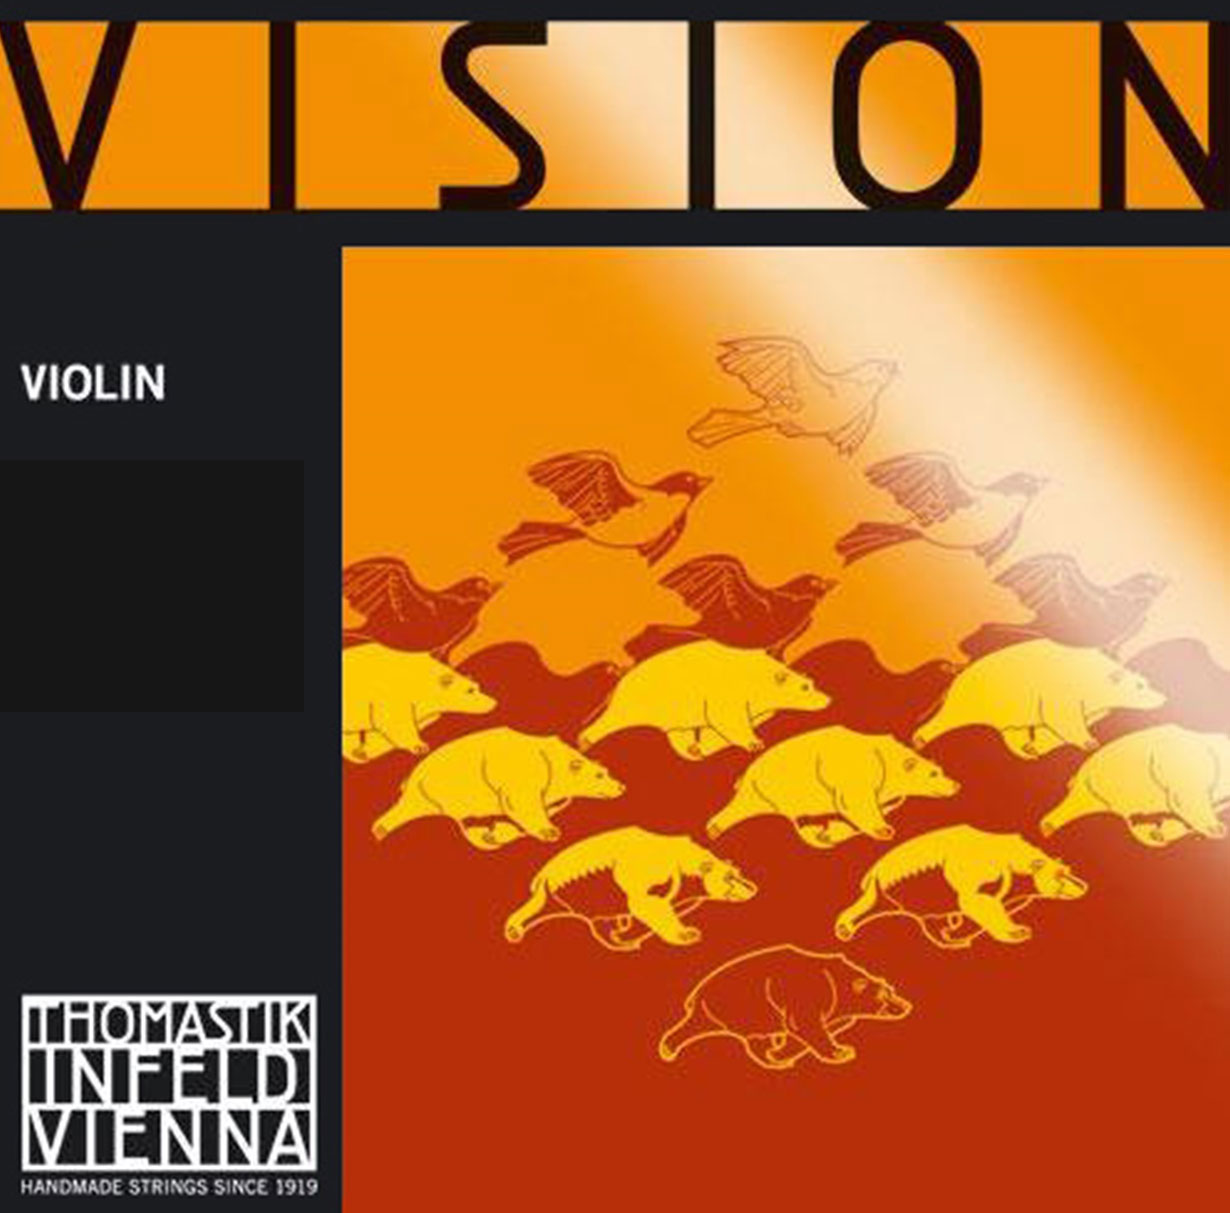 Thomastik Infeld Vision Violin G String